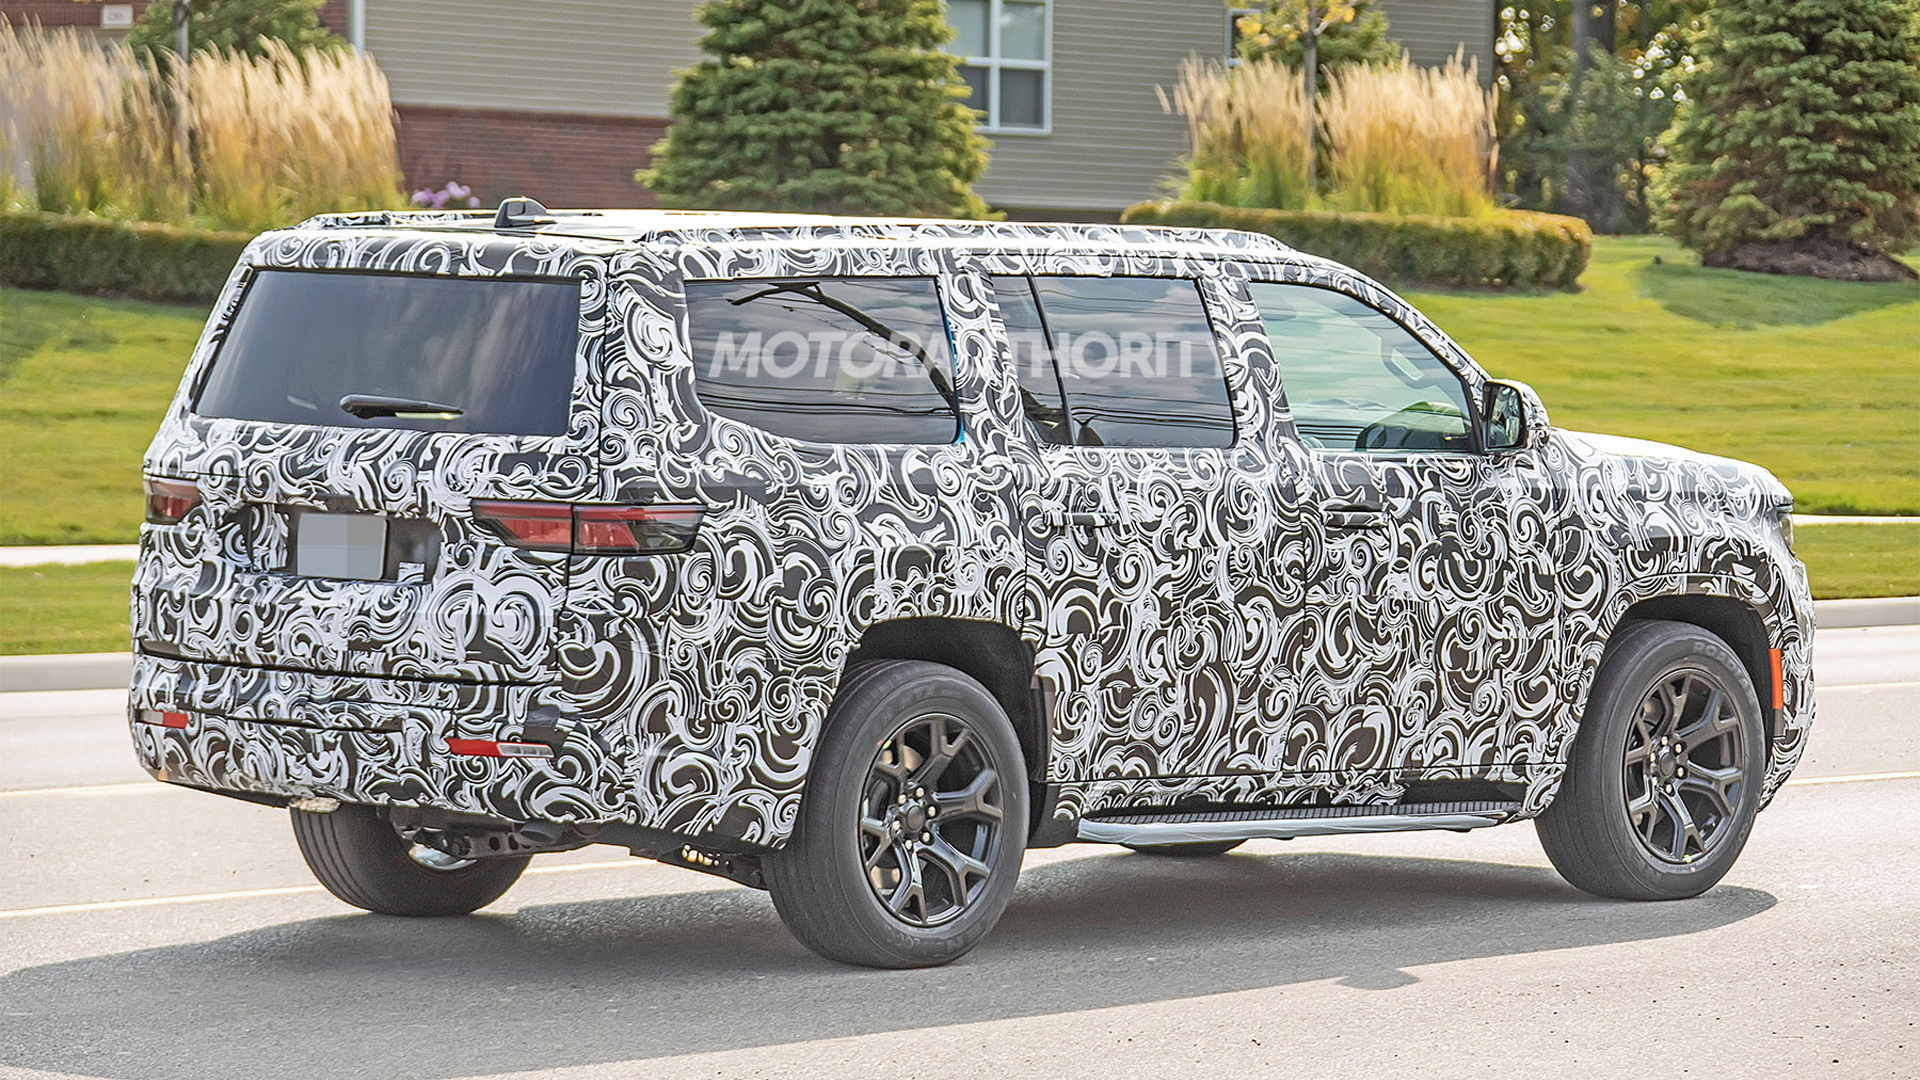 2022 Jeep Grand Wagoneer spy shots - Photo credit: S. Baldauf/SB-Medien